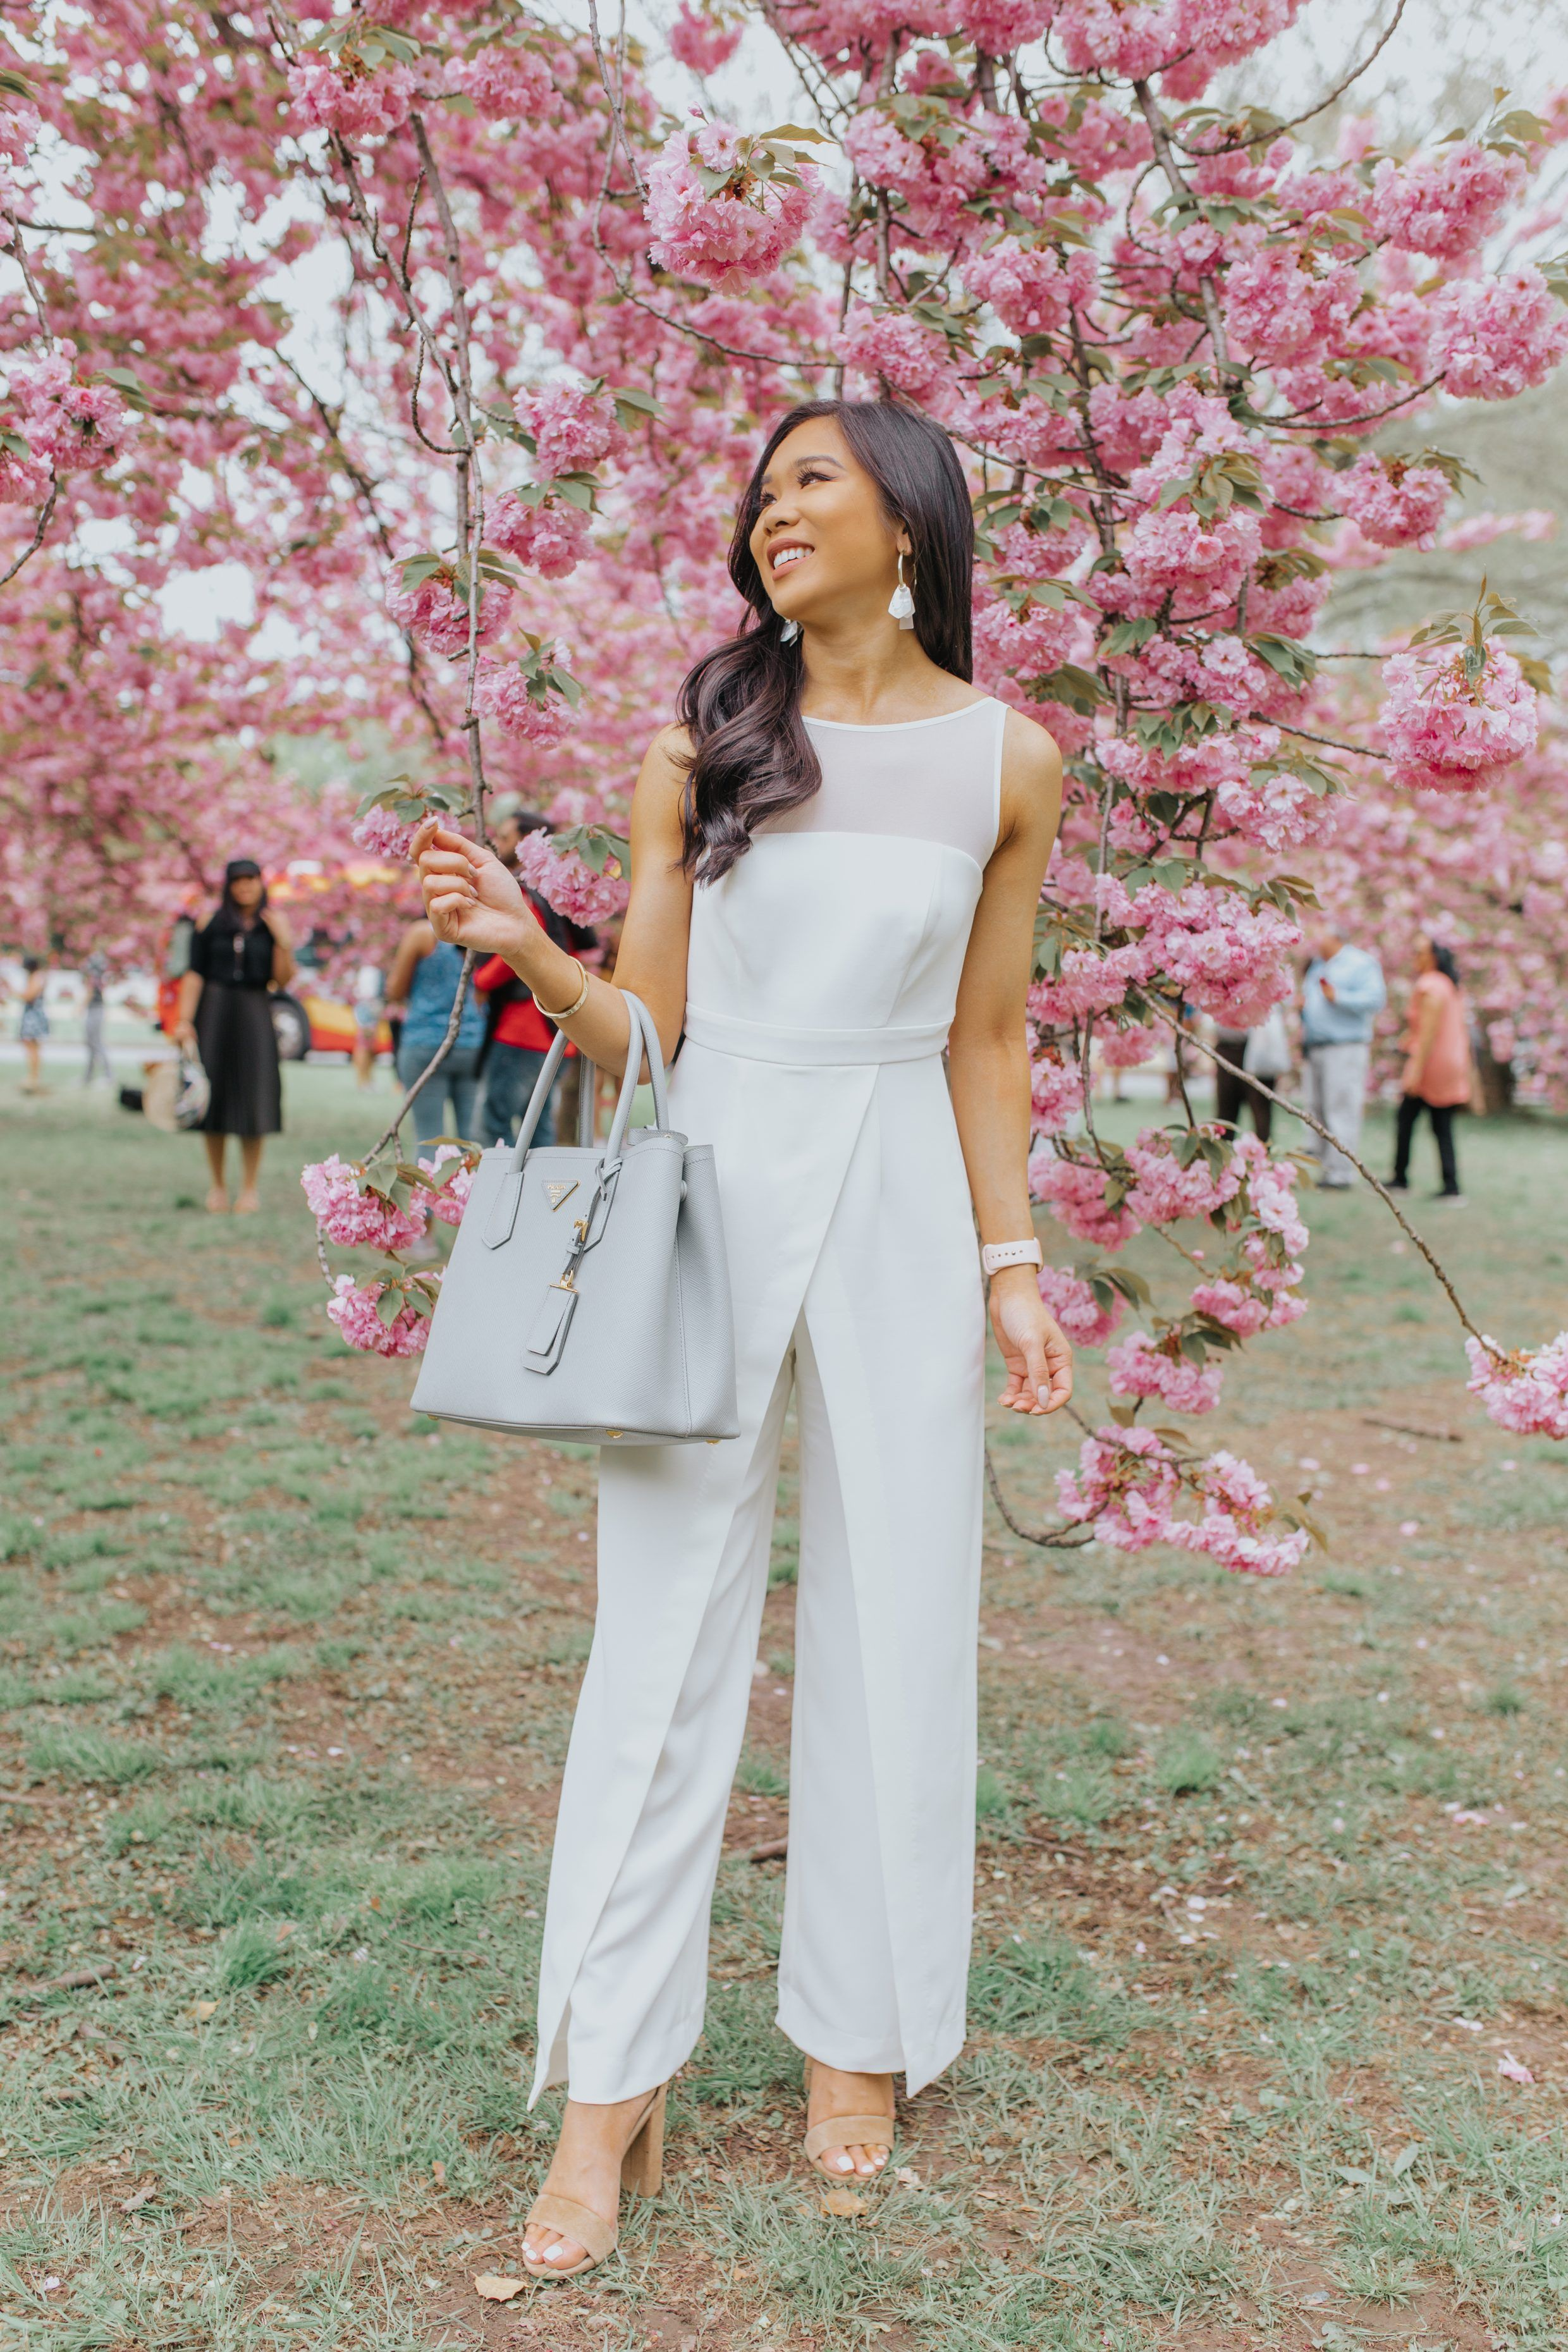 b73e09b7c Hoang-Kim wears a white statement jumpsuit amidst the cherry blossoms in  Washington, D.C.